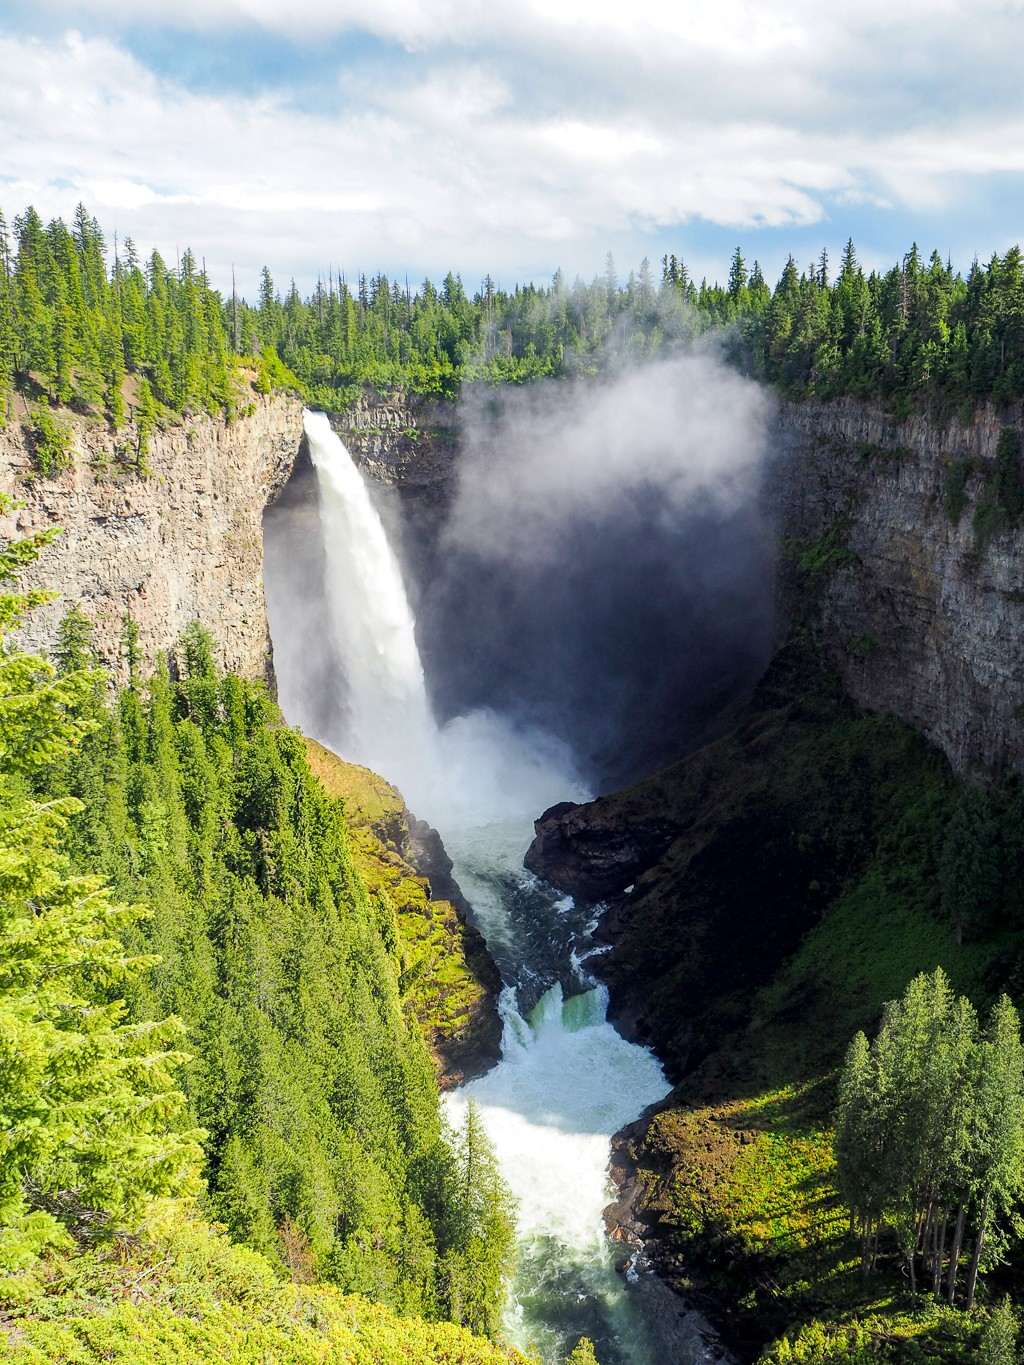 Canada, Wells Gray, British Columbia, Travel, Road Trip, Helmcken Falls, Waterfall